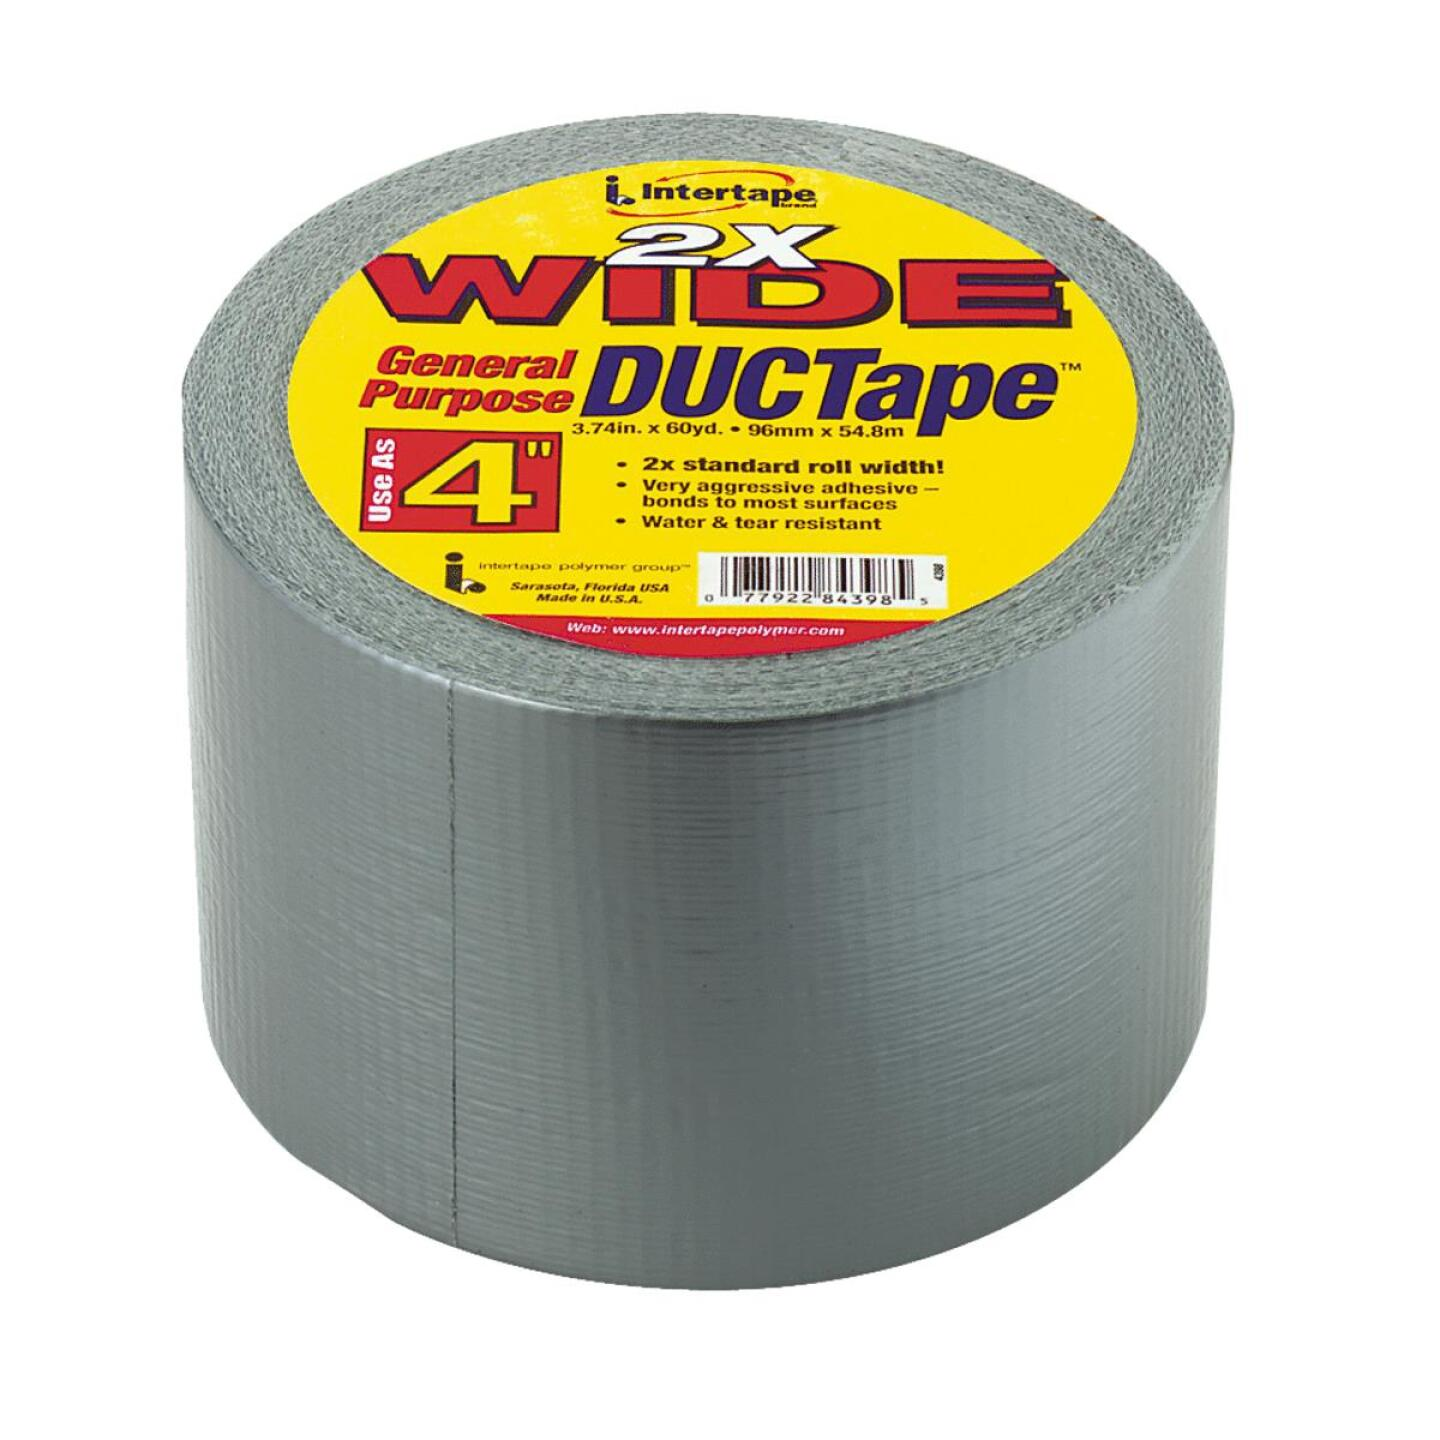 Intertape DUCTape 4 In. x 55 Yd. General Purpose Duct Tape, Silver Image 1